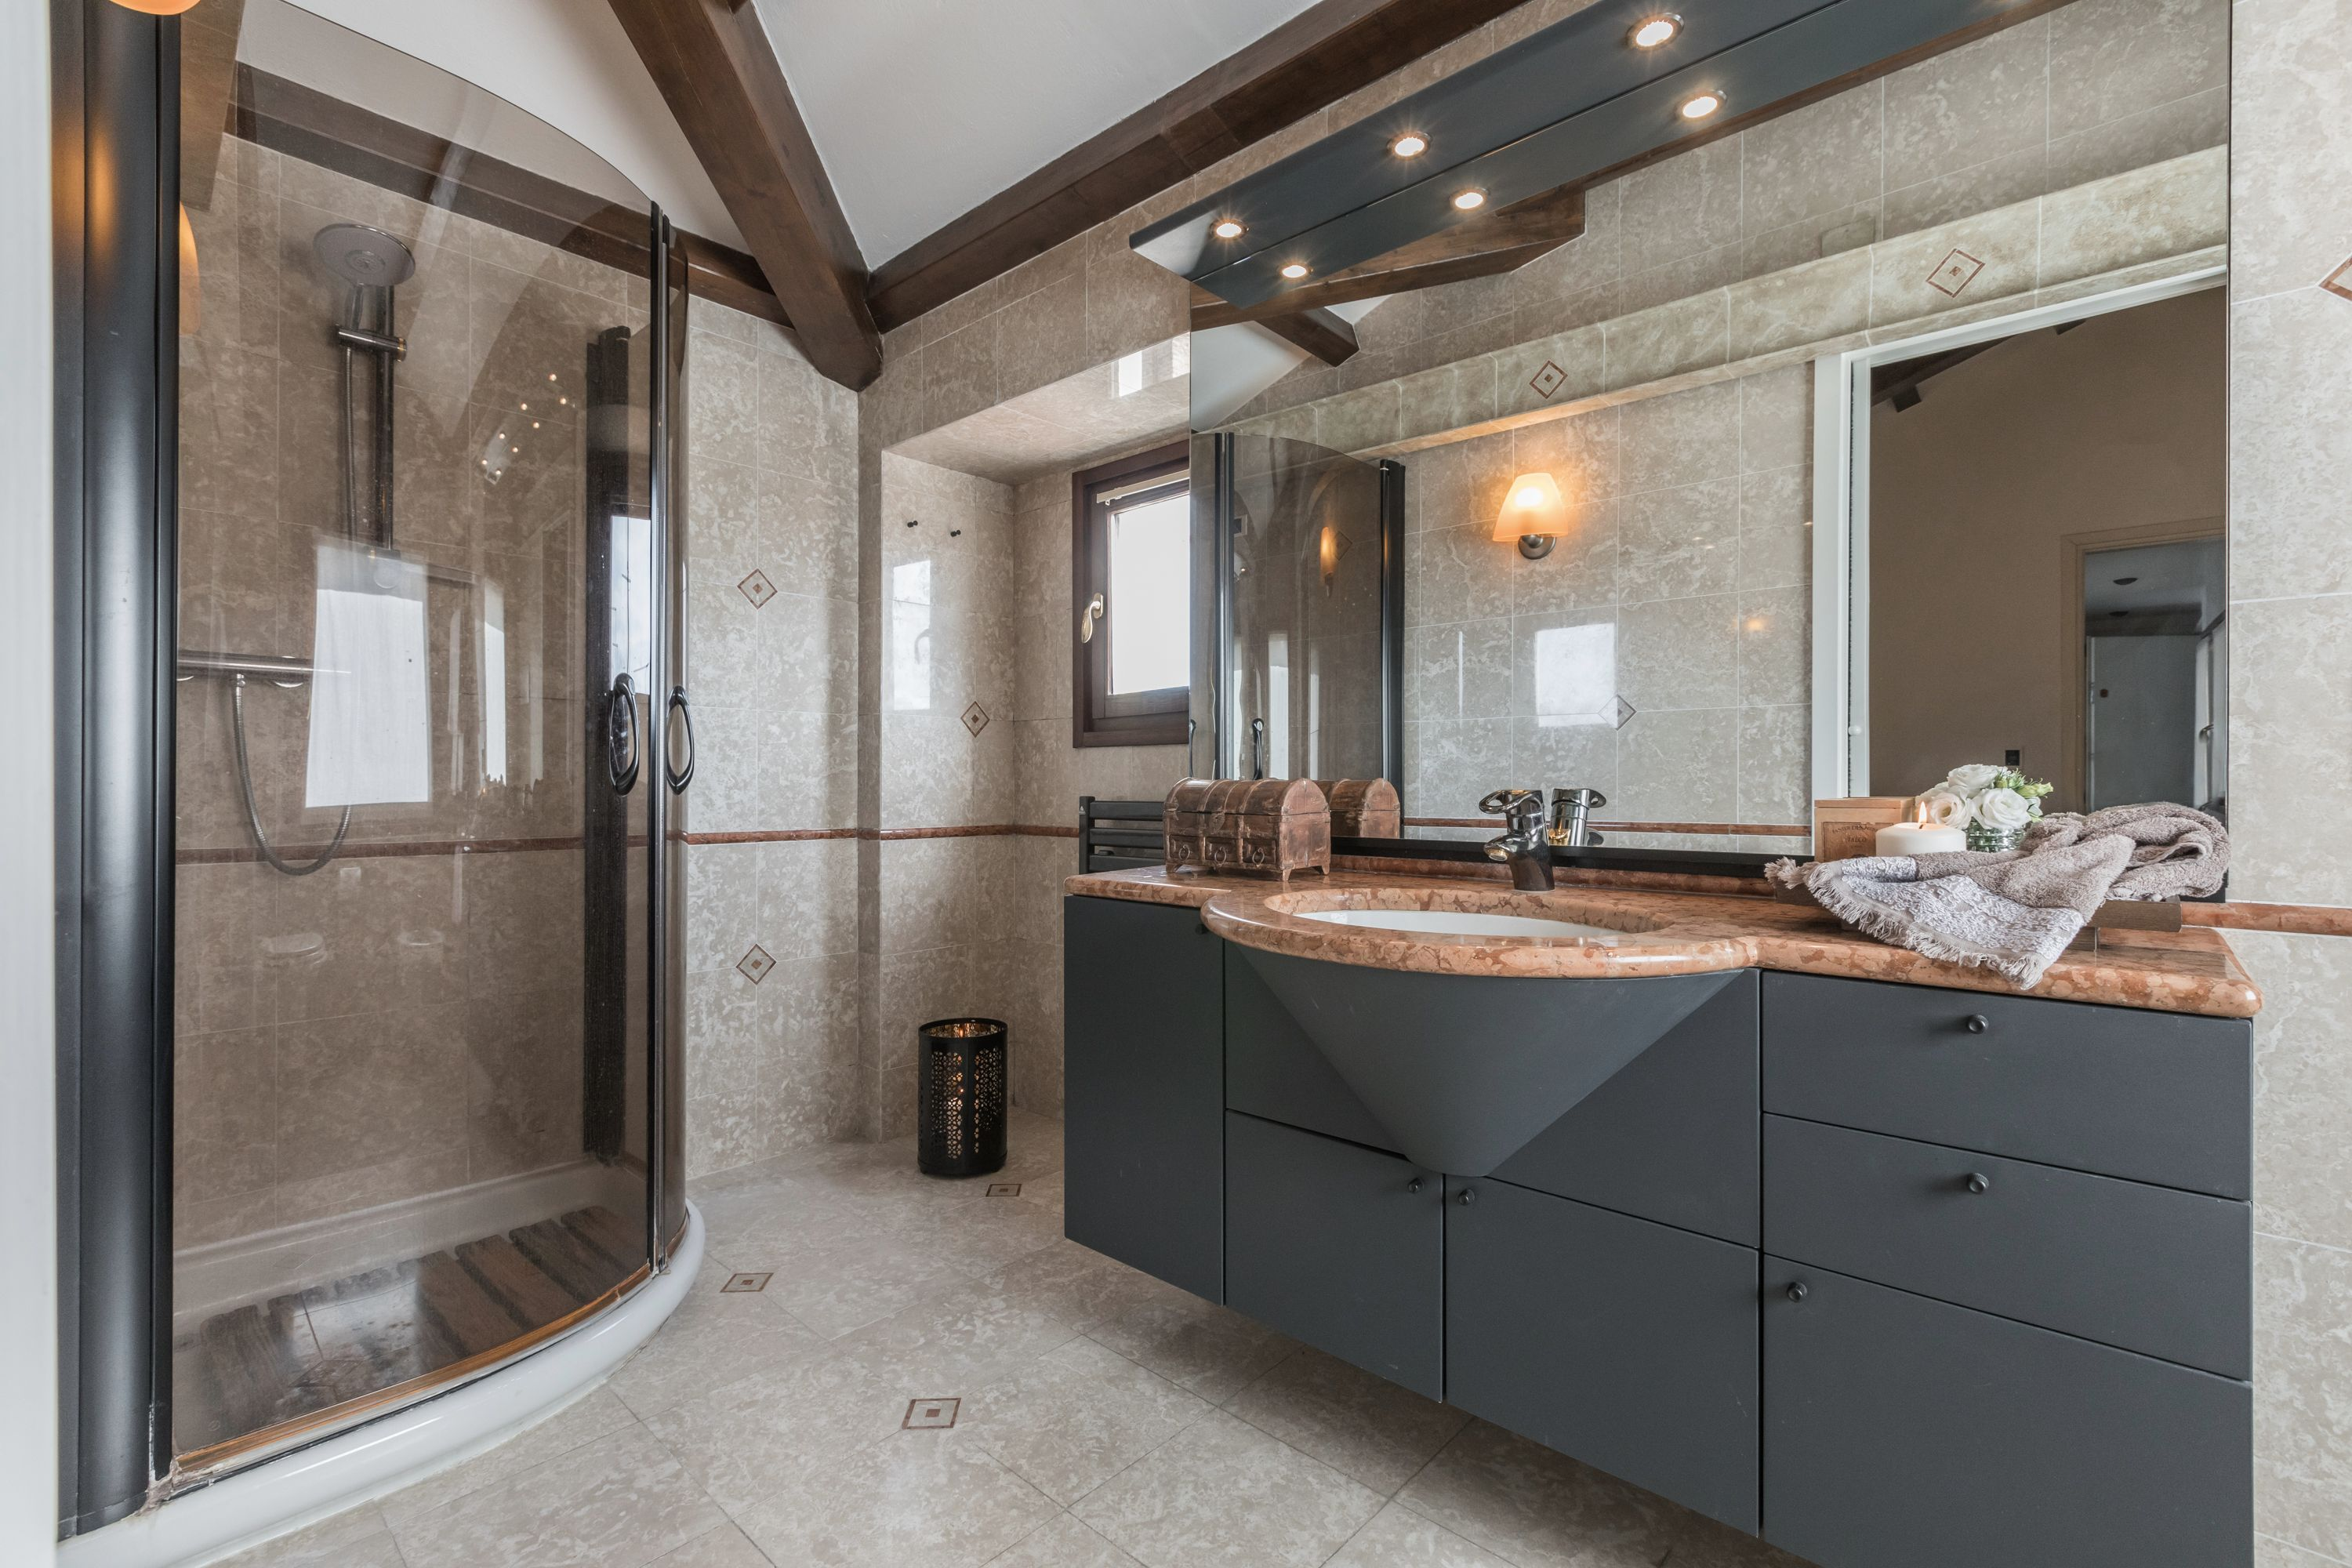 bright and spacious en-suite bathroom with shower